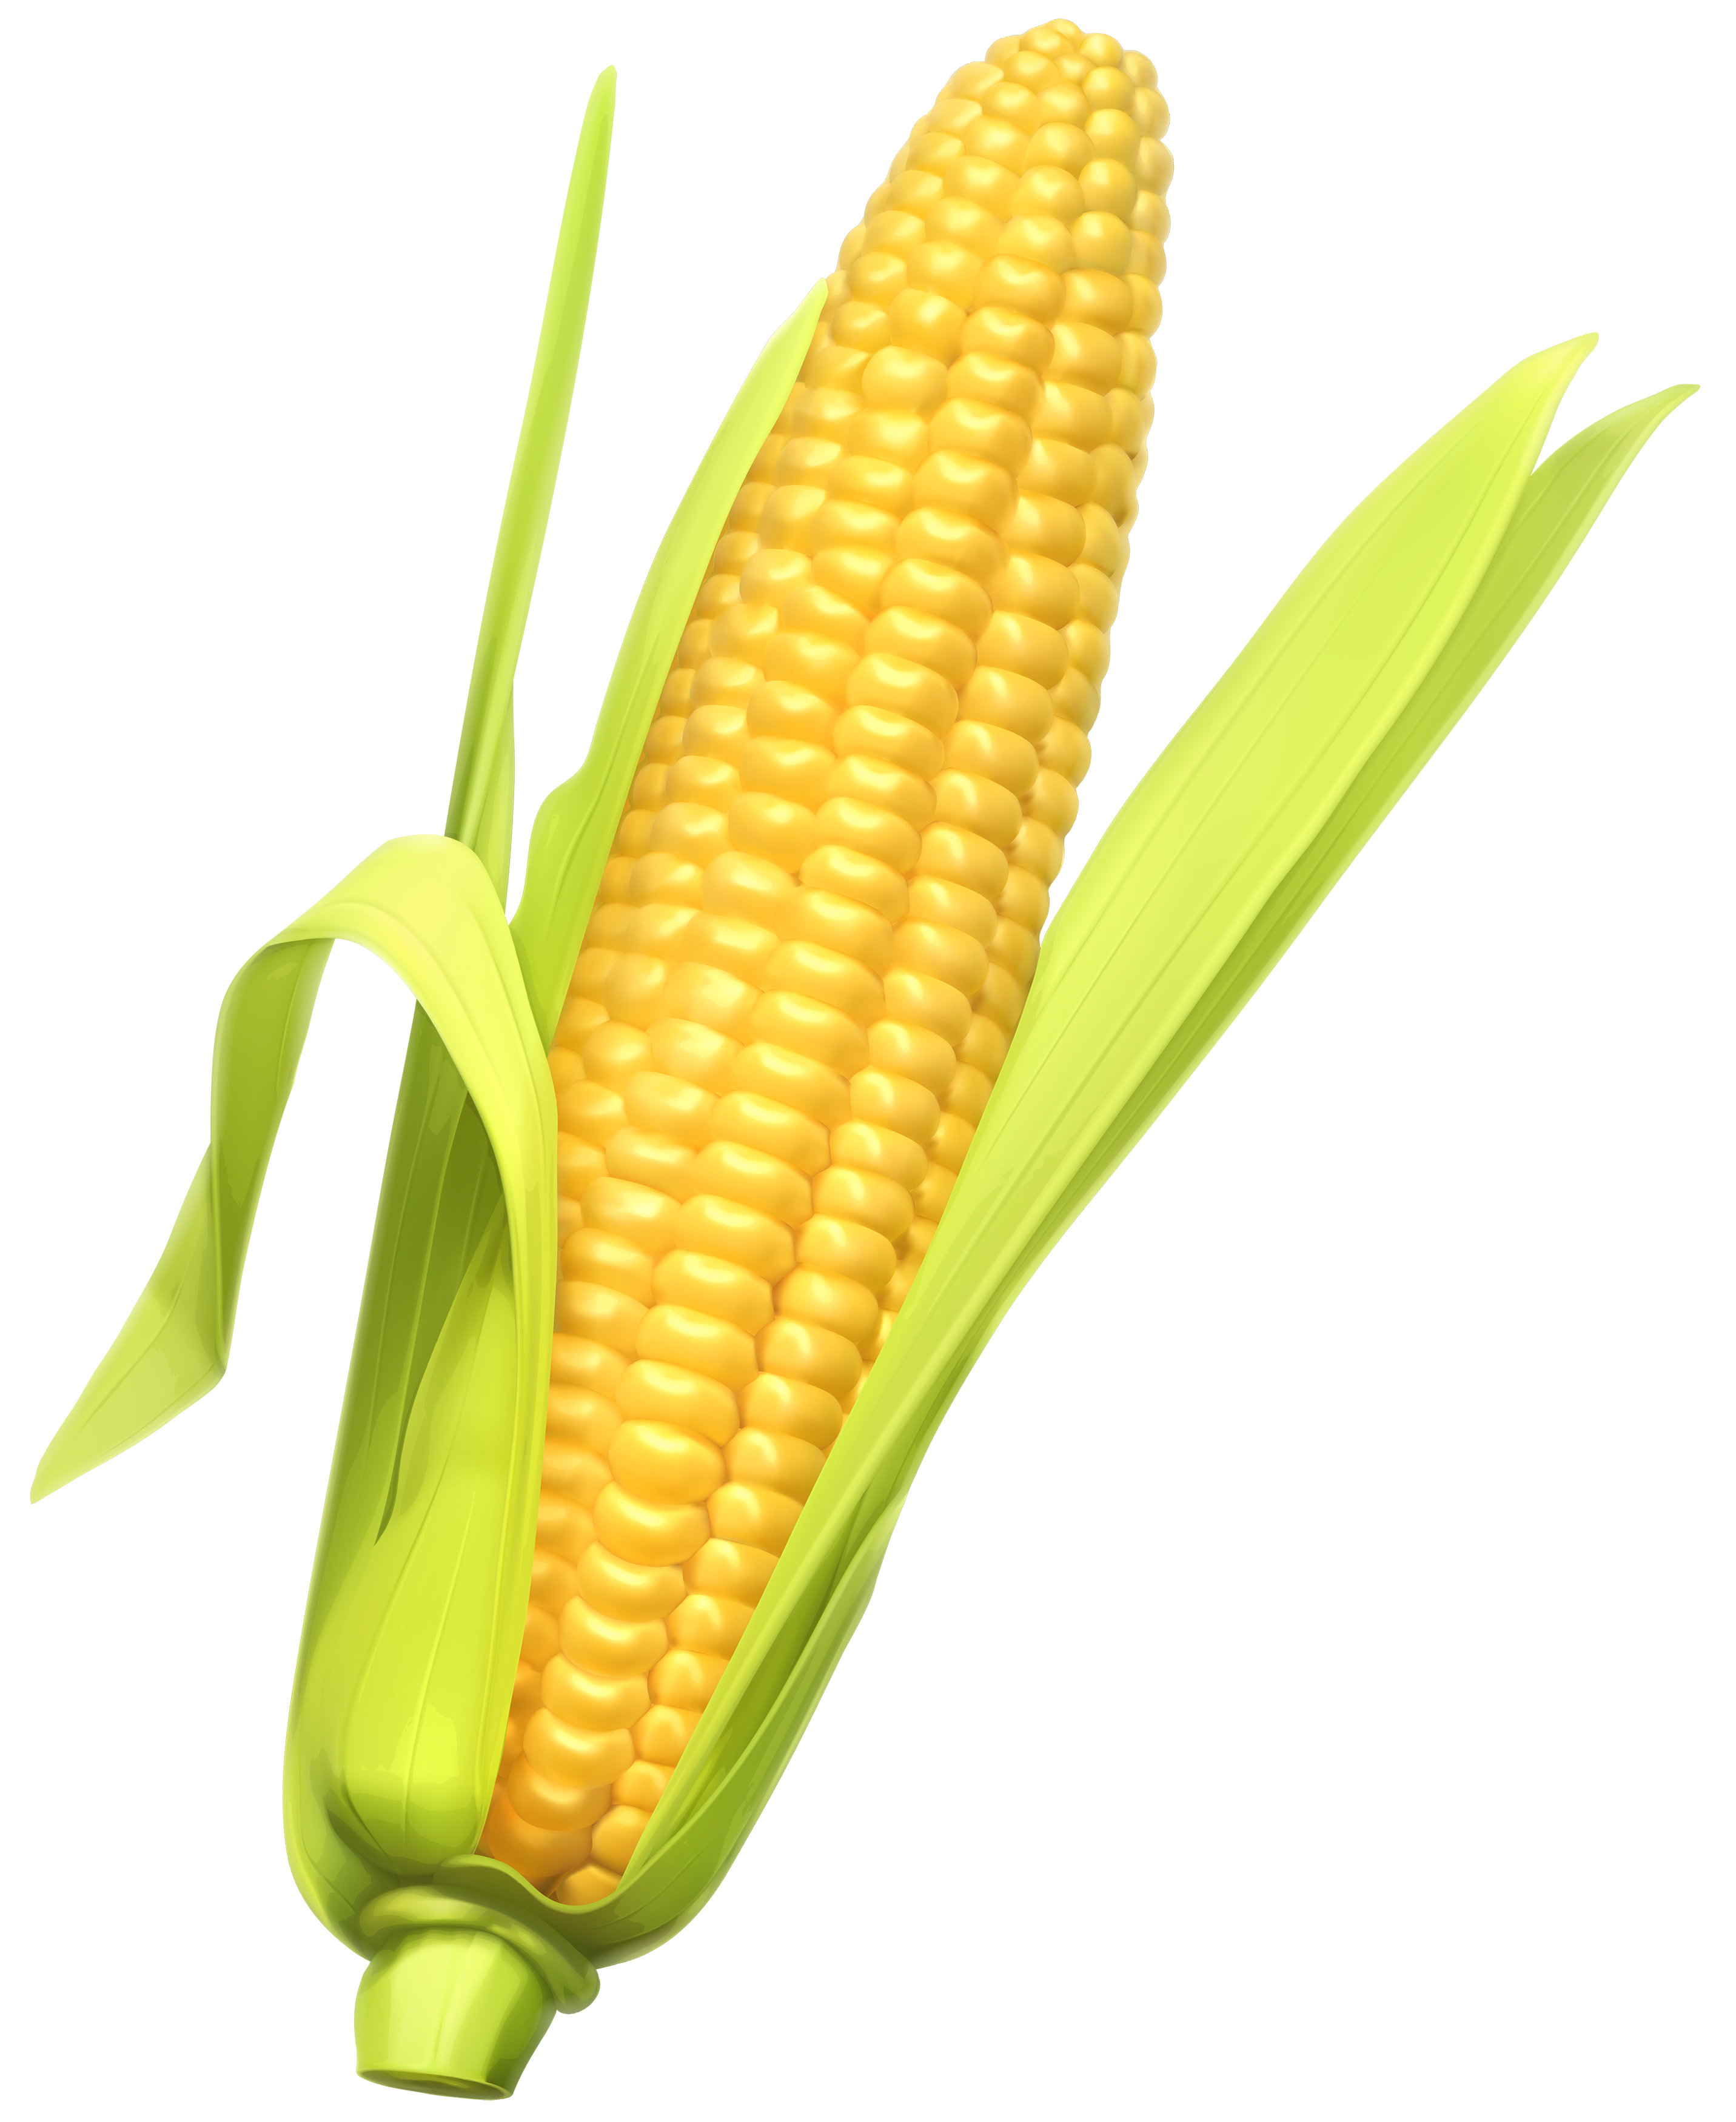 Maize types clipart #3